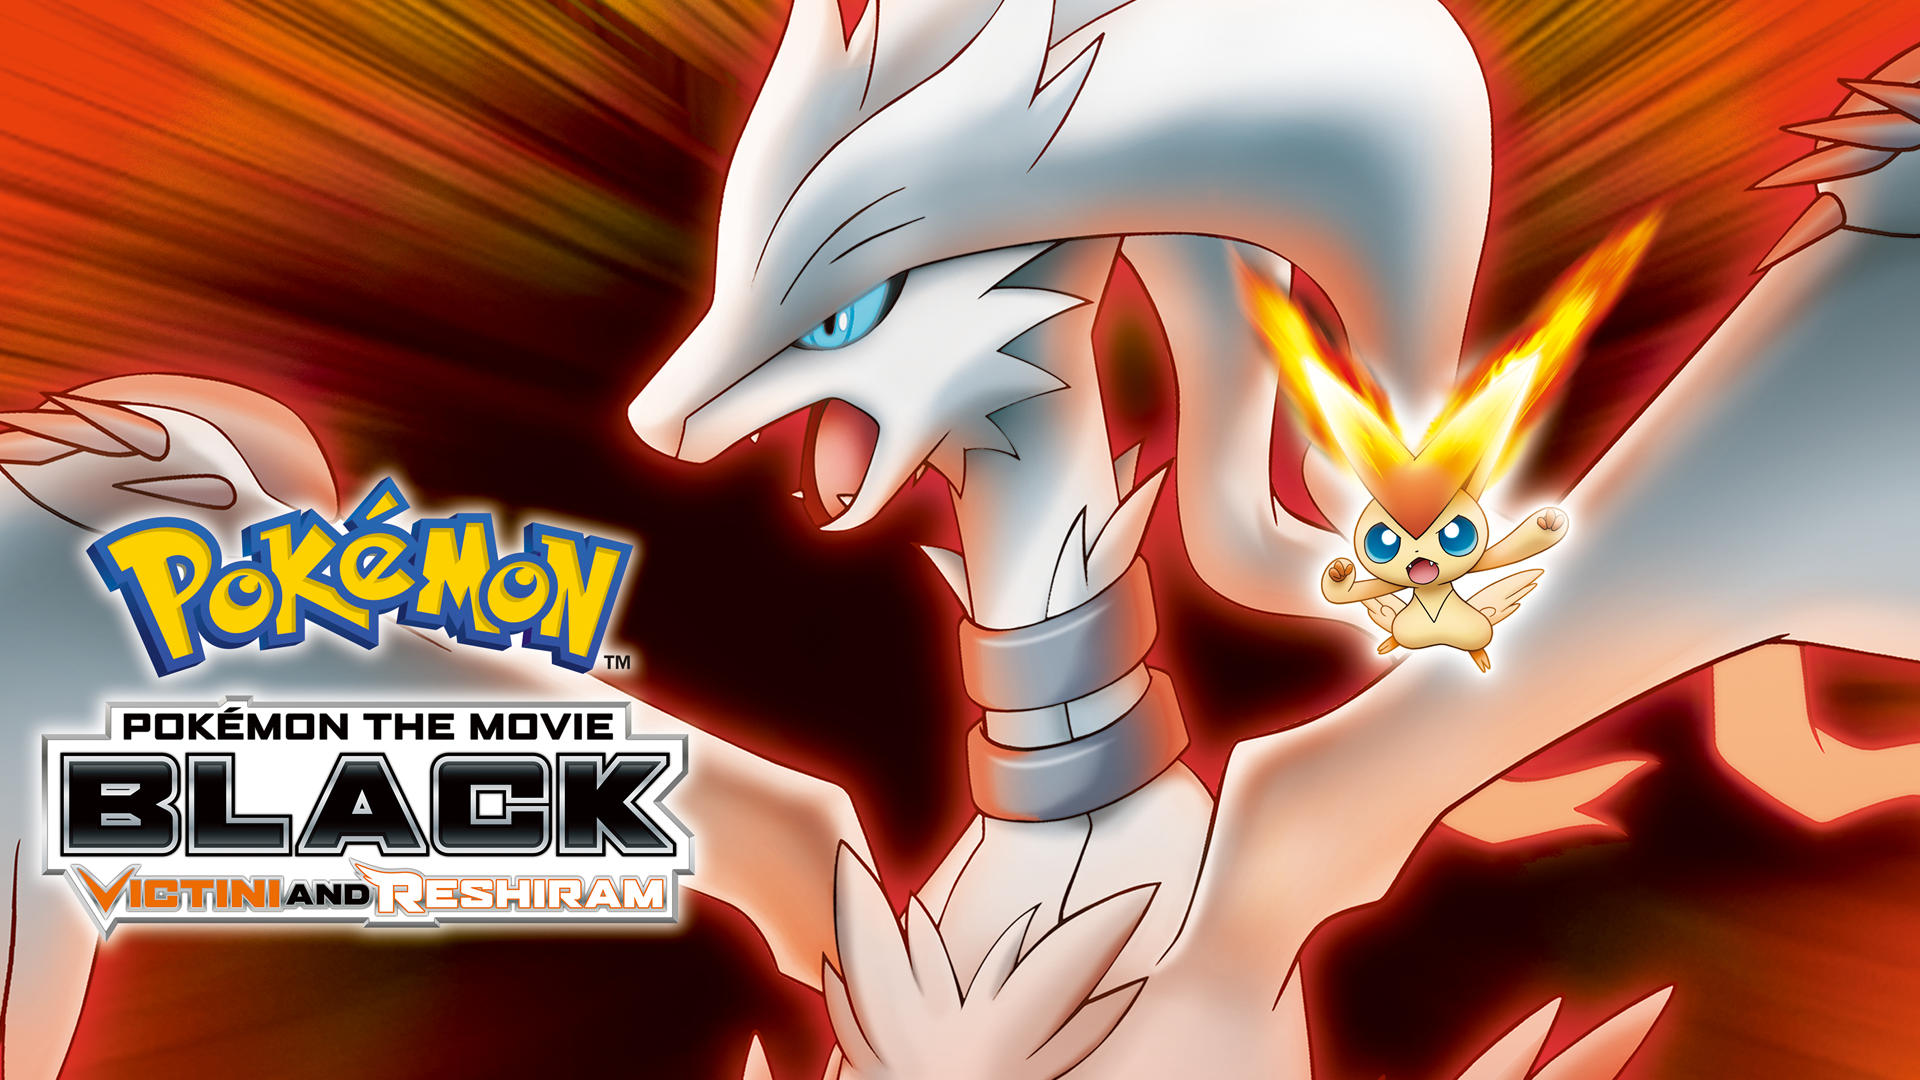 Pokémon the Movie: Black-Victini and Reshiram